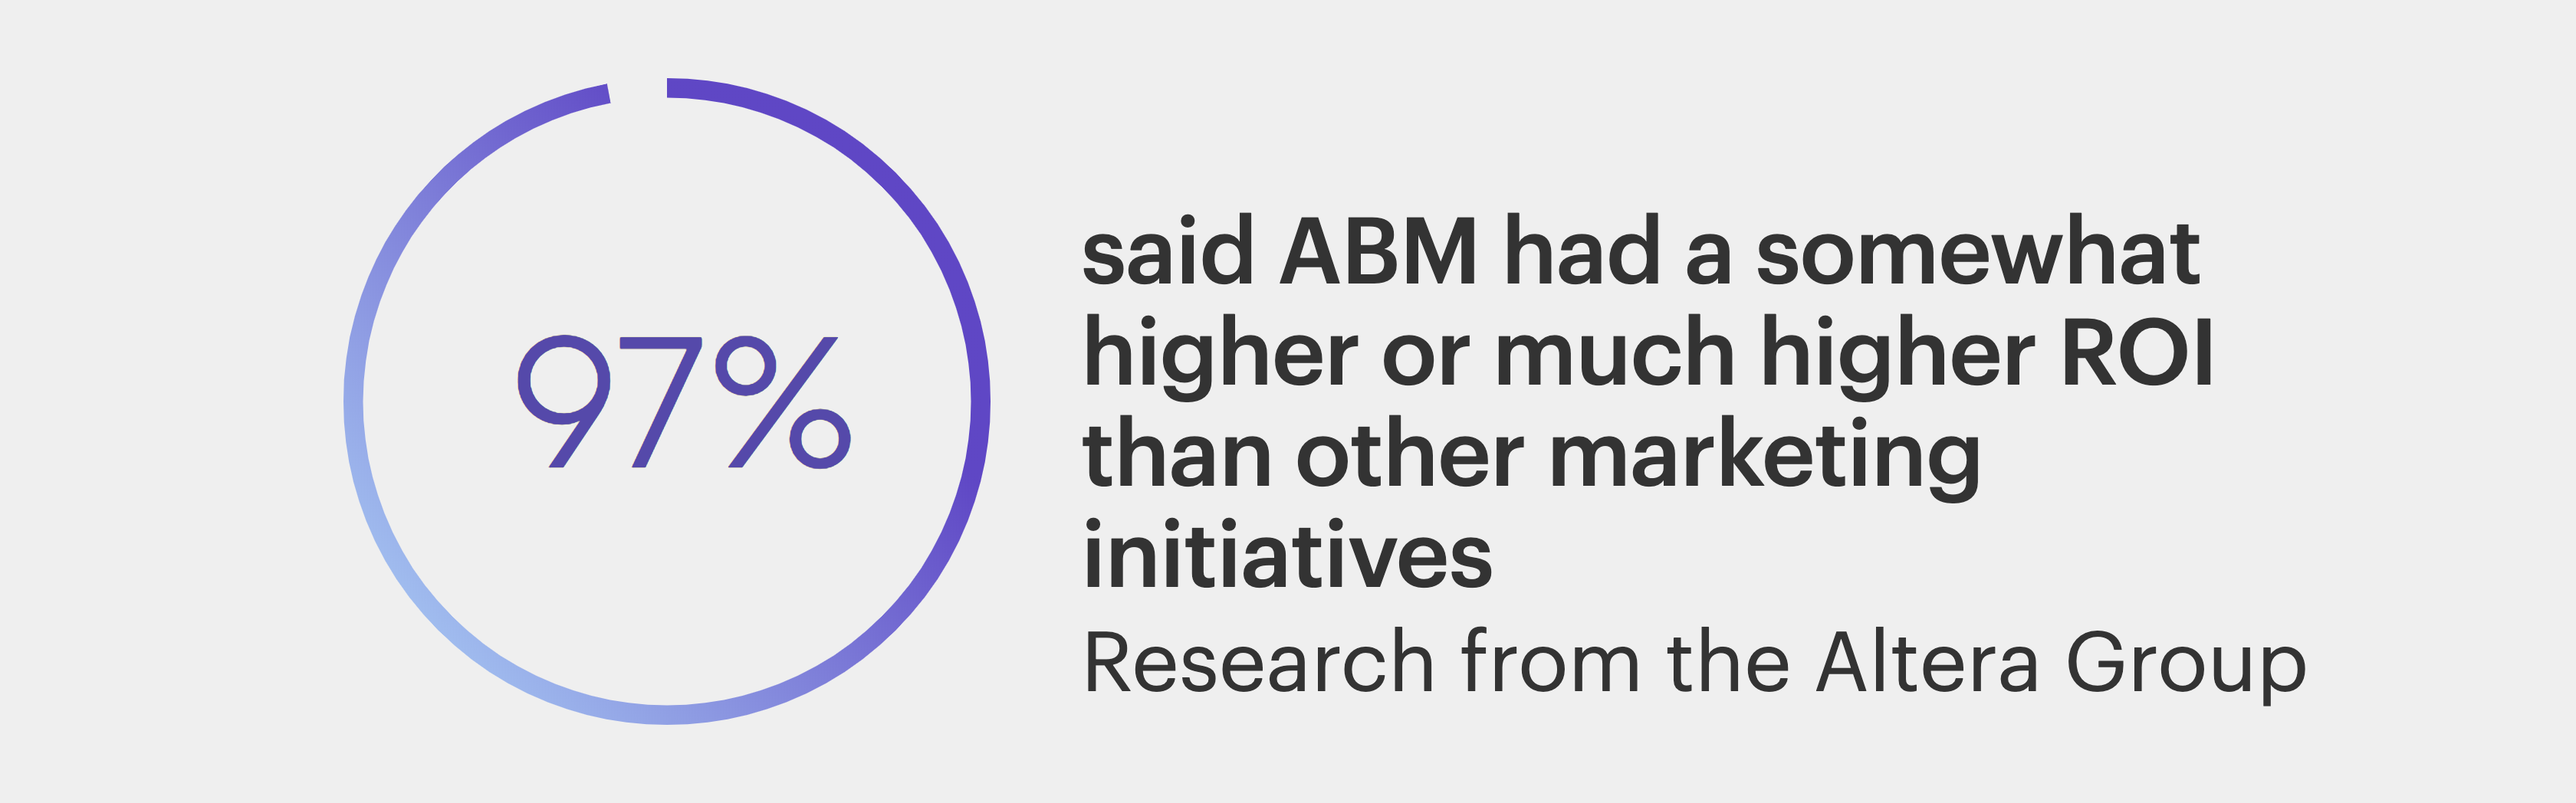 ABM had a somewhat higher or much higher ROI than other marketing initiatives